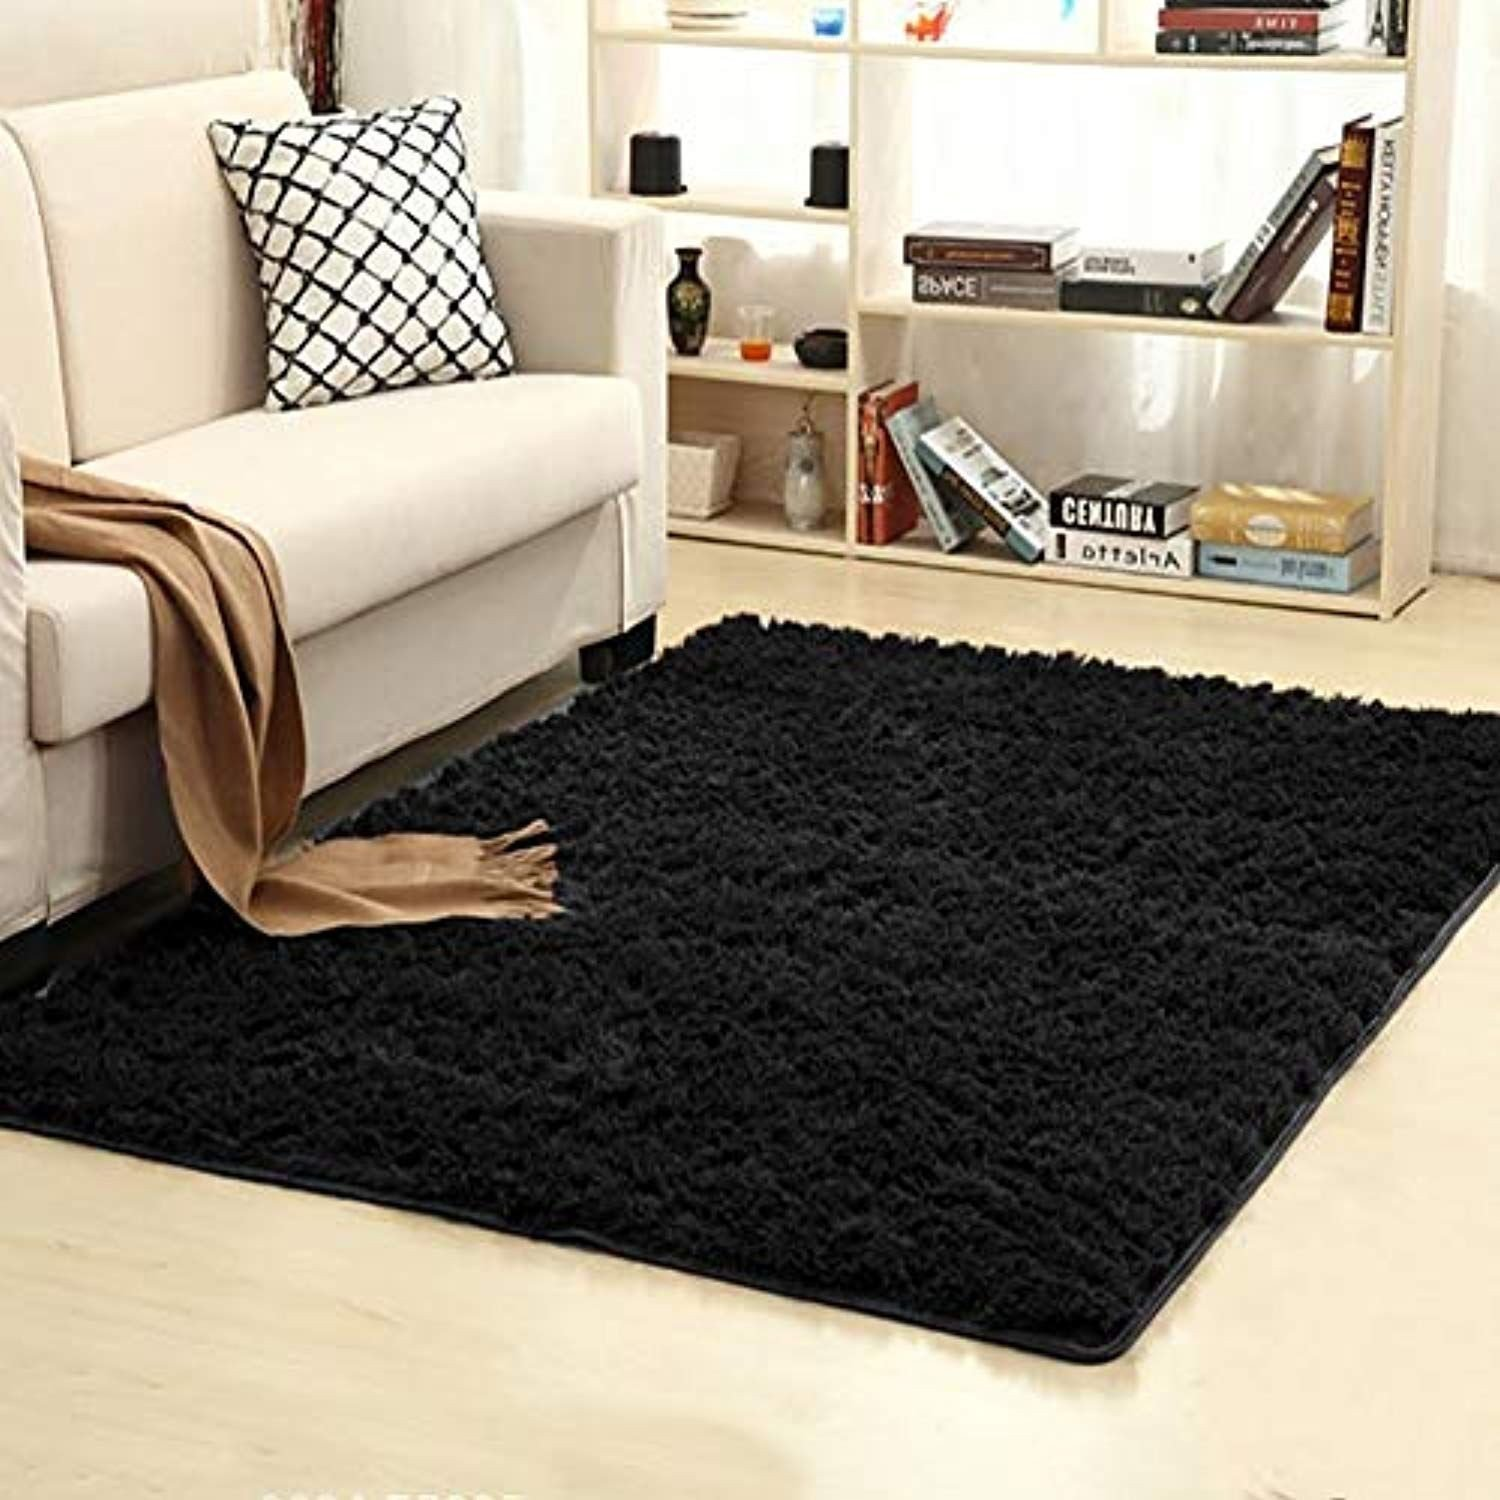 Fluffy Carpet for Bedroom Unique Junovo Ultra soft Contemporary Fluffy Indoor area Rugs Home